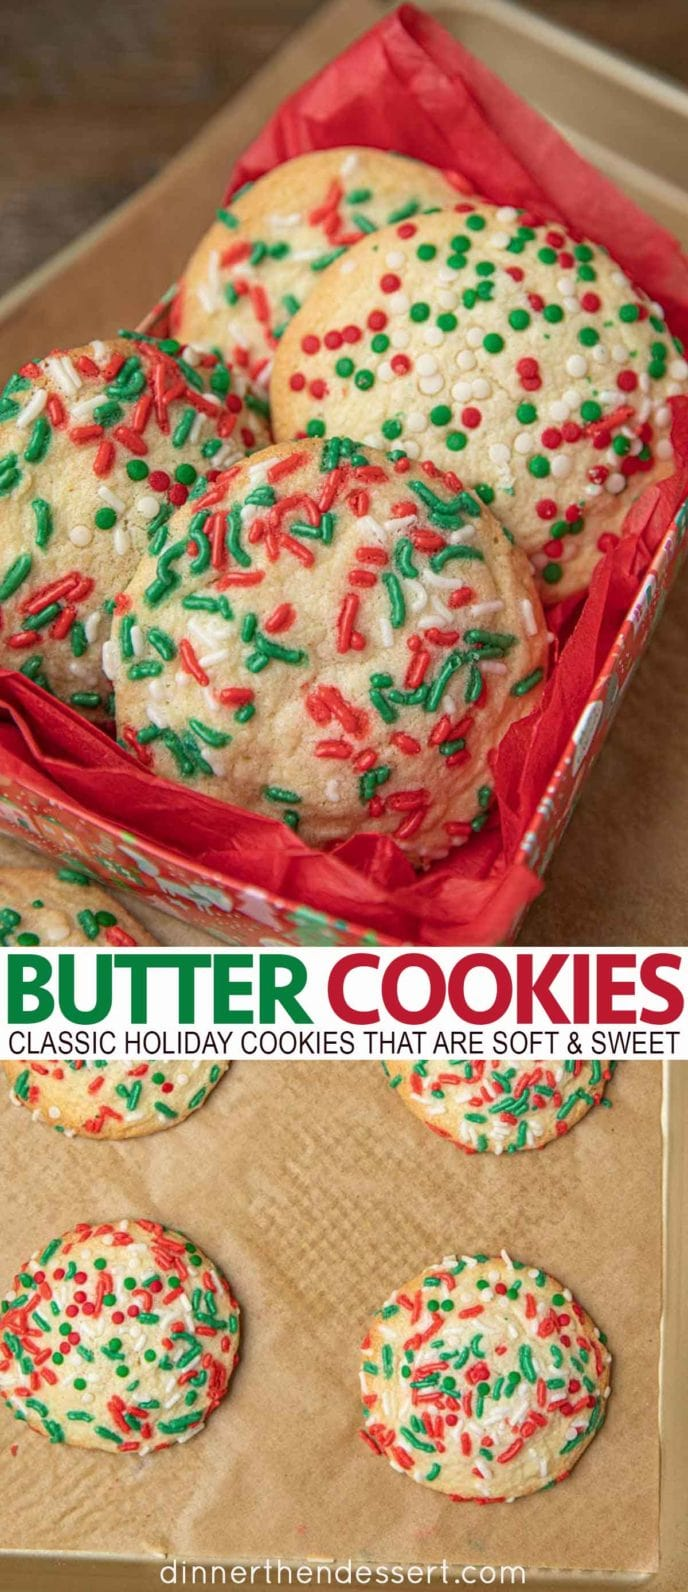 Butter Cookies in a Christmas box